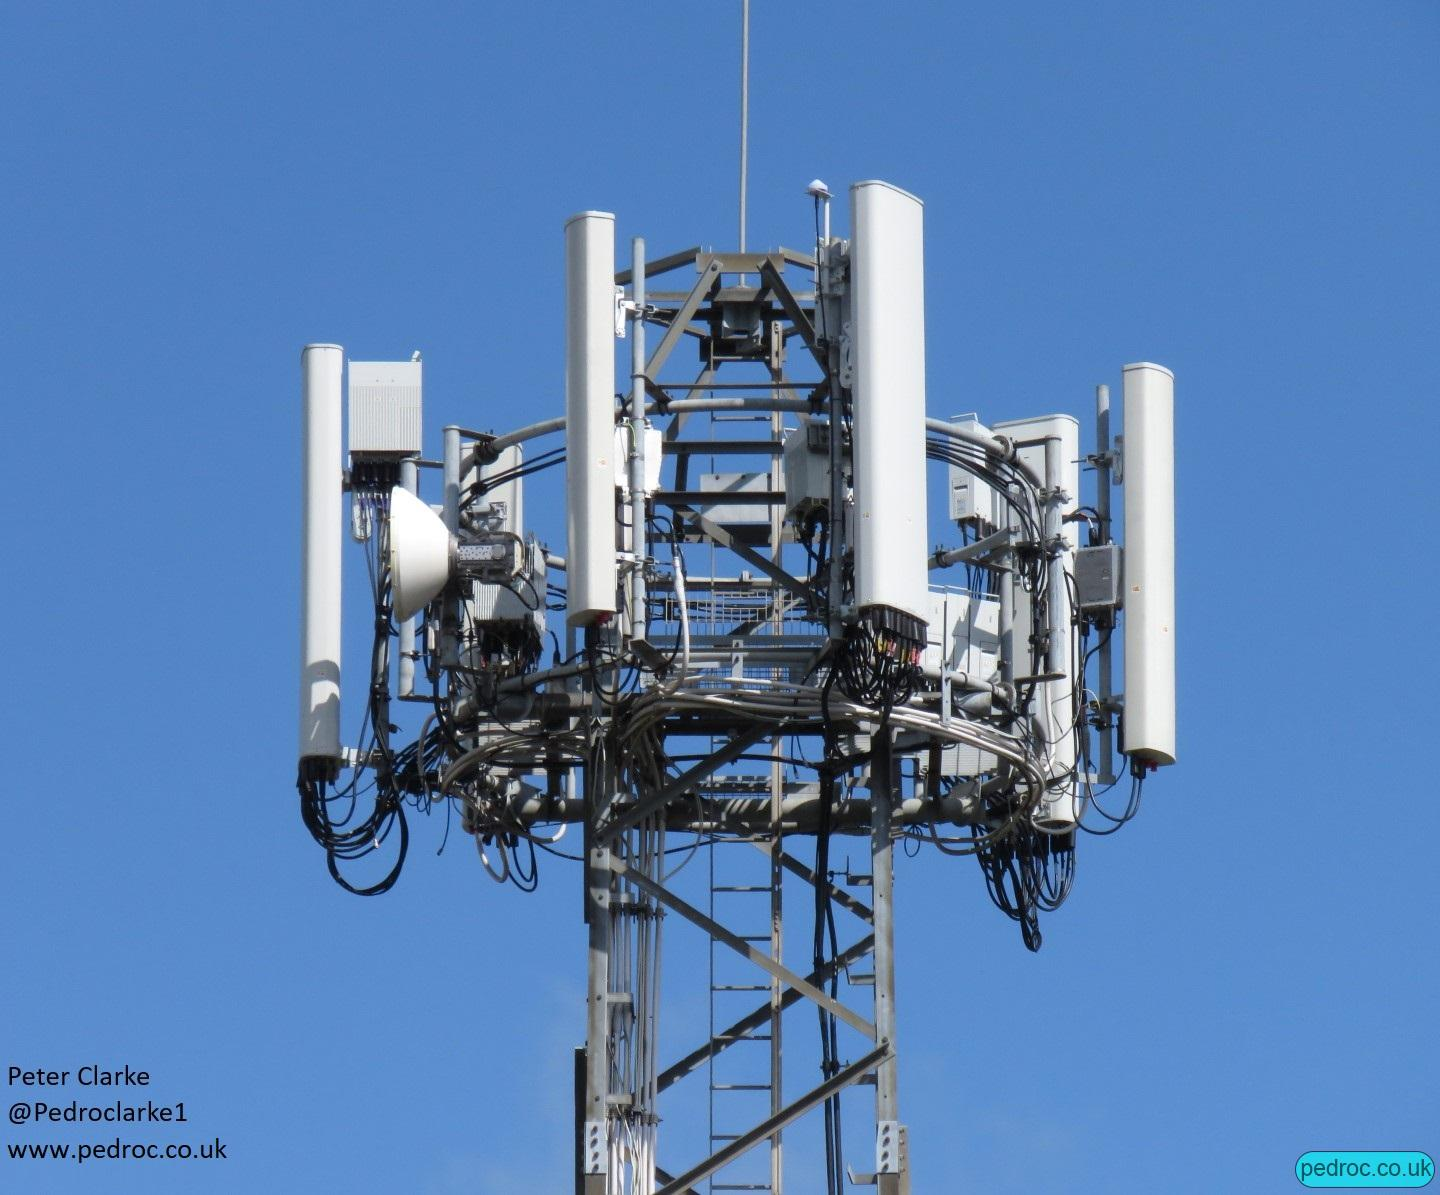 EE 5G Mast in the Marfleet area of Hull using Huawei RRU 5258 for 8T8R N78 and Huawei AOC4518r8v06 antennas.